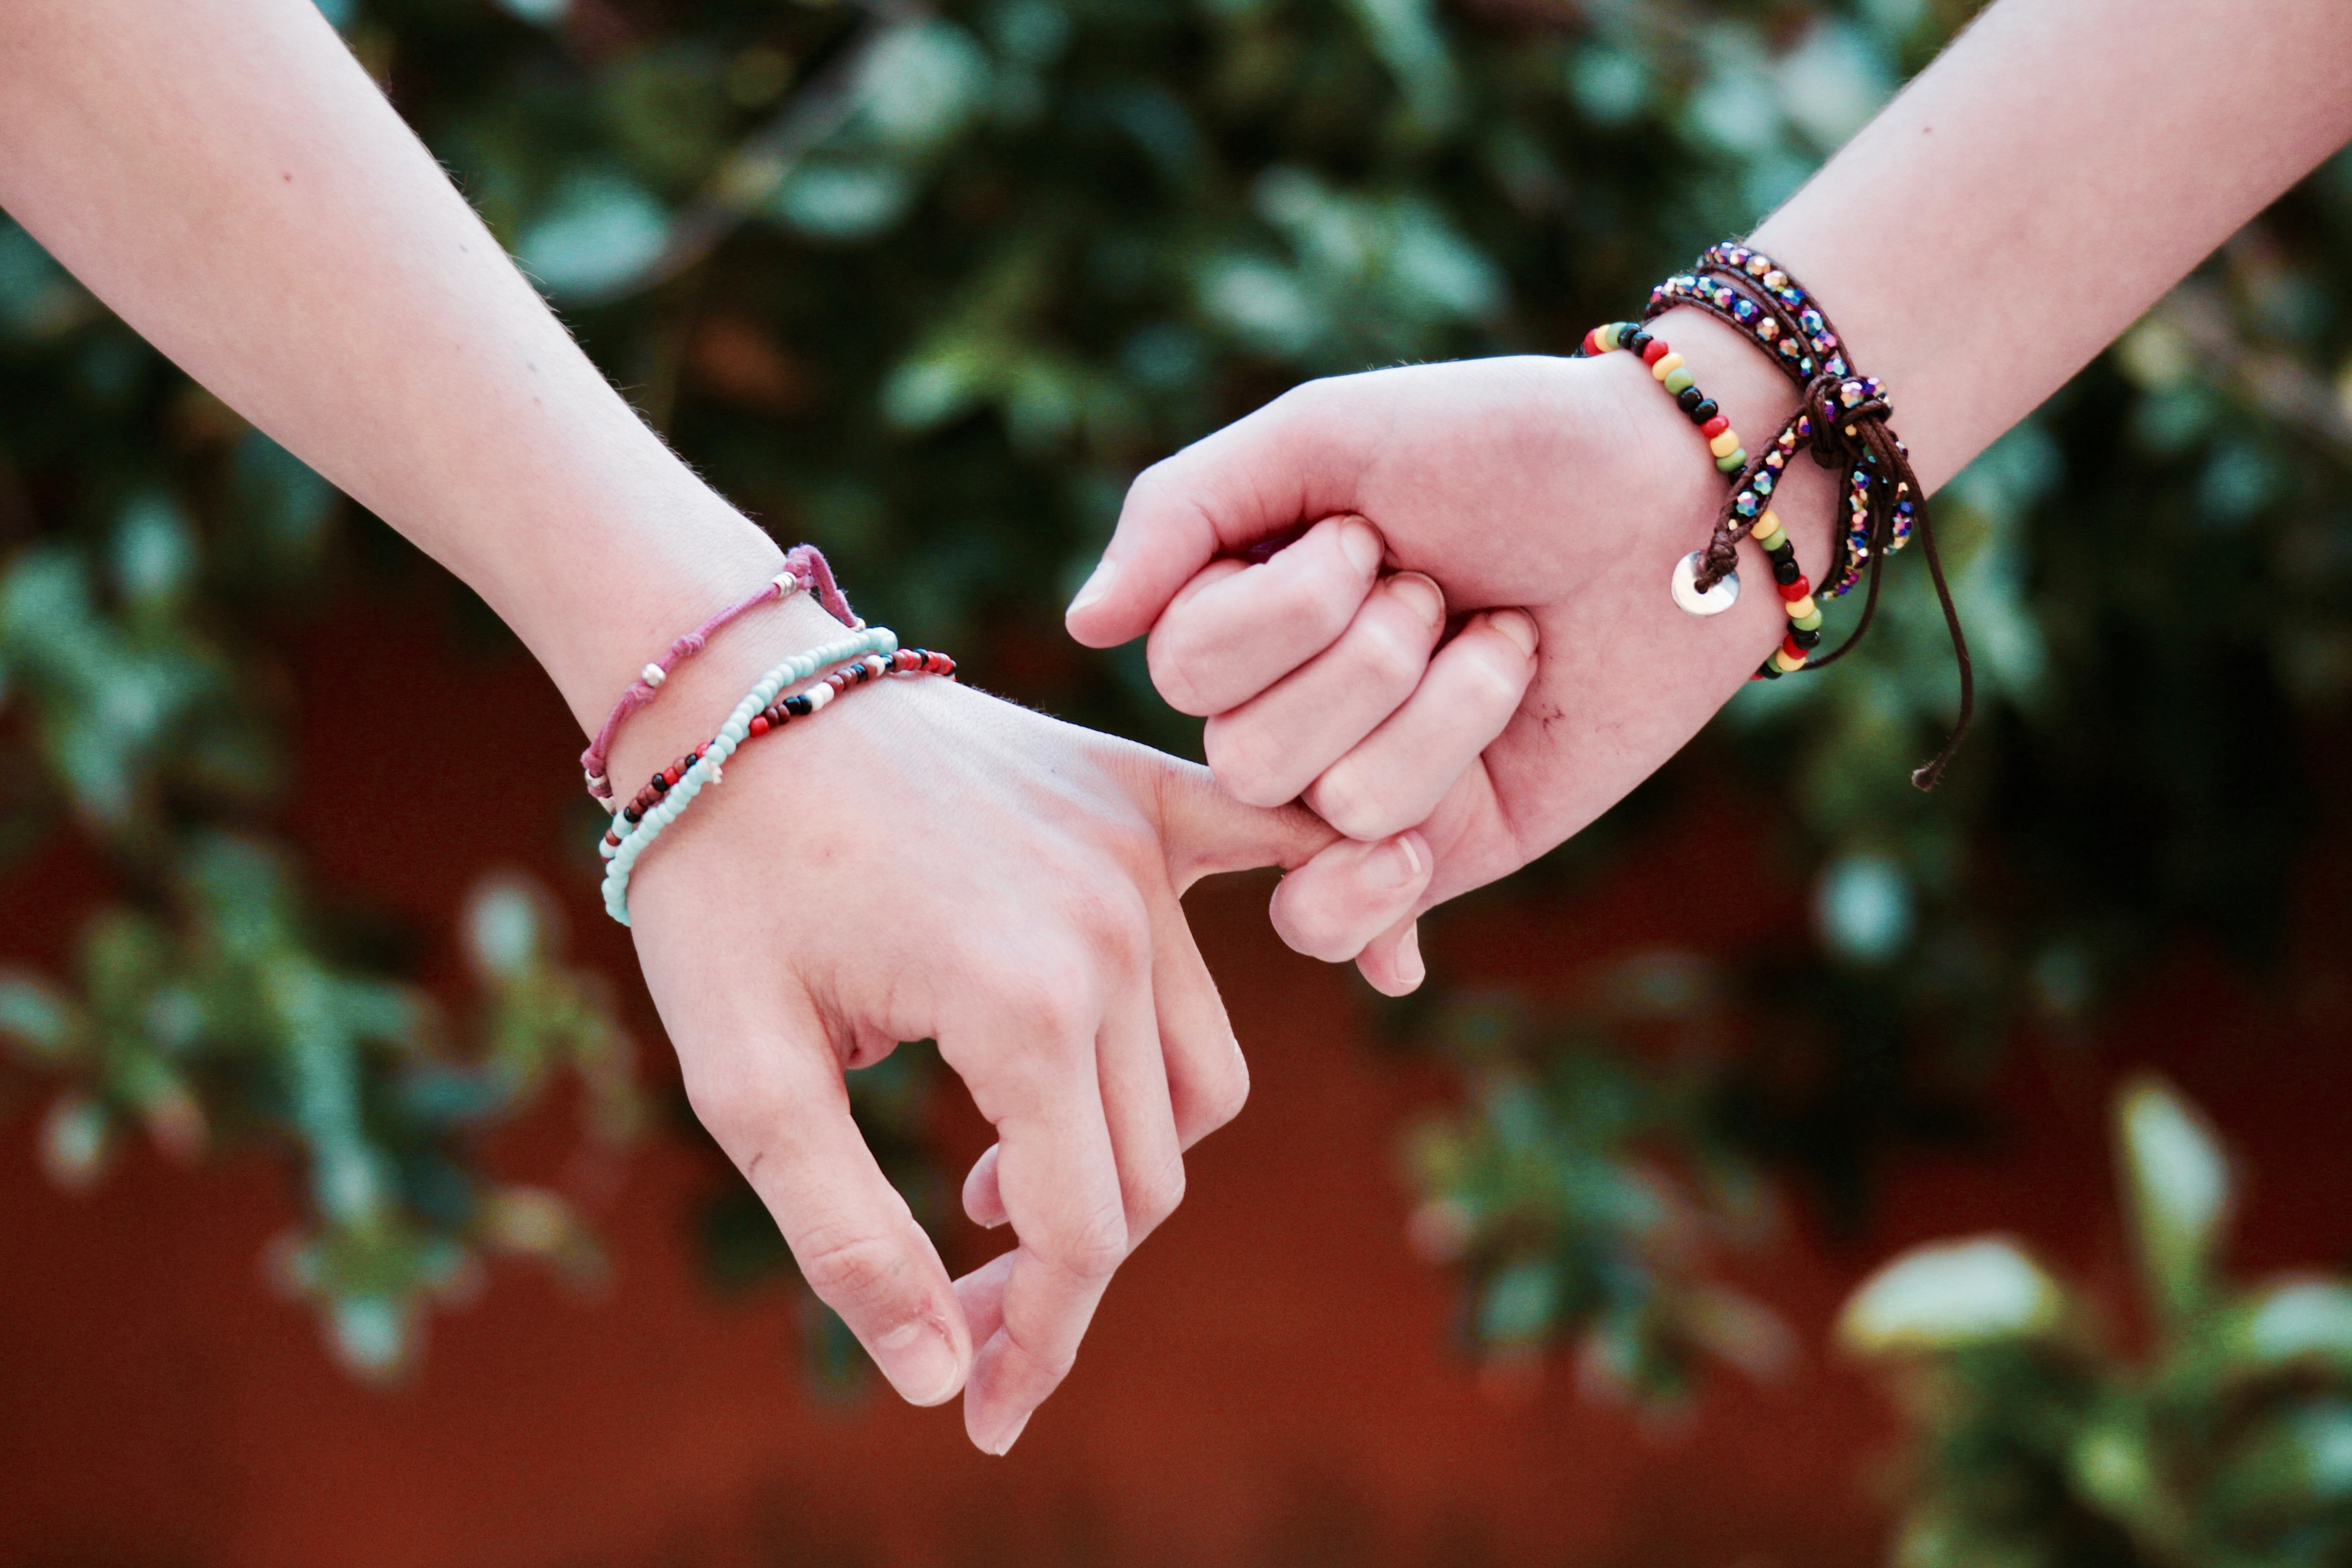 1000 Great Holding Hands Photos Pexels Free Stock Photos